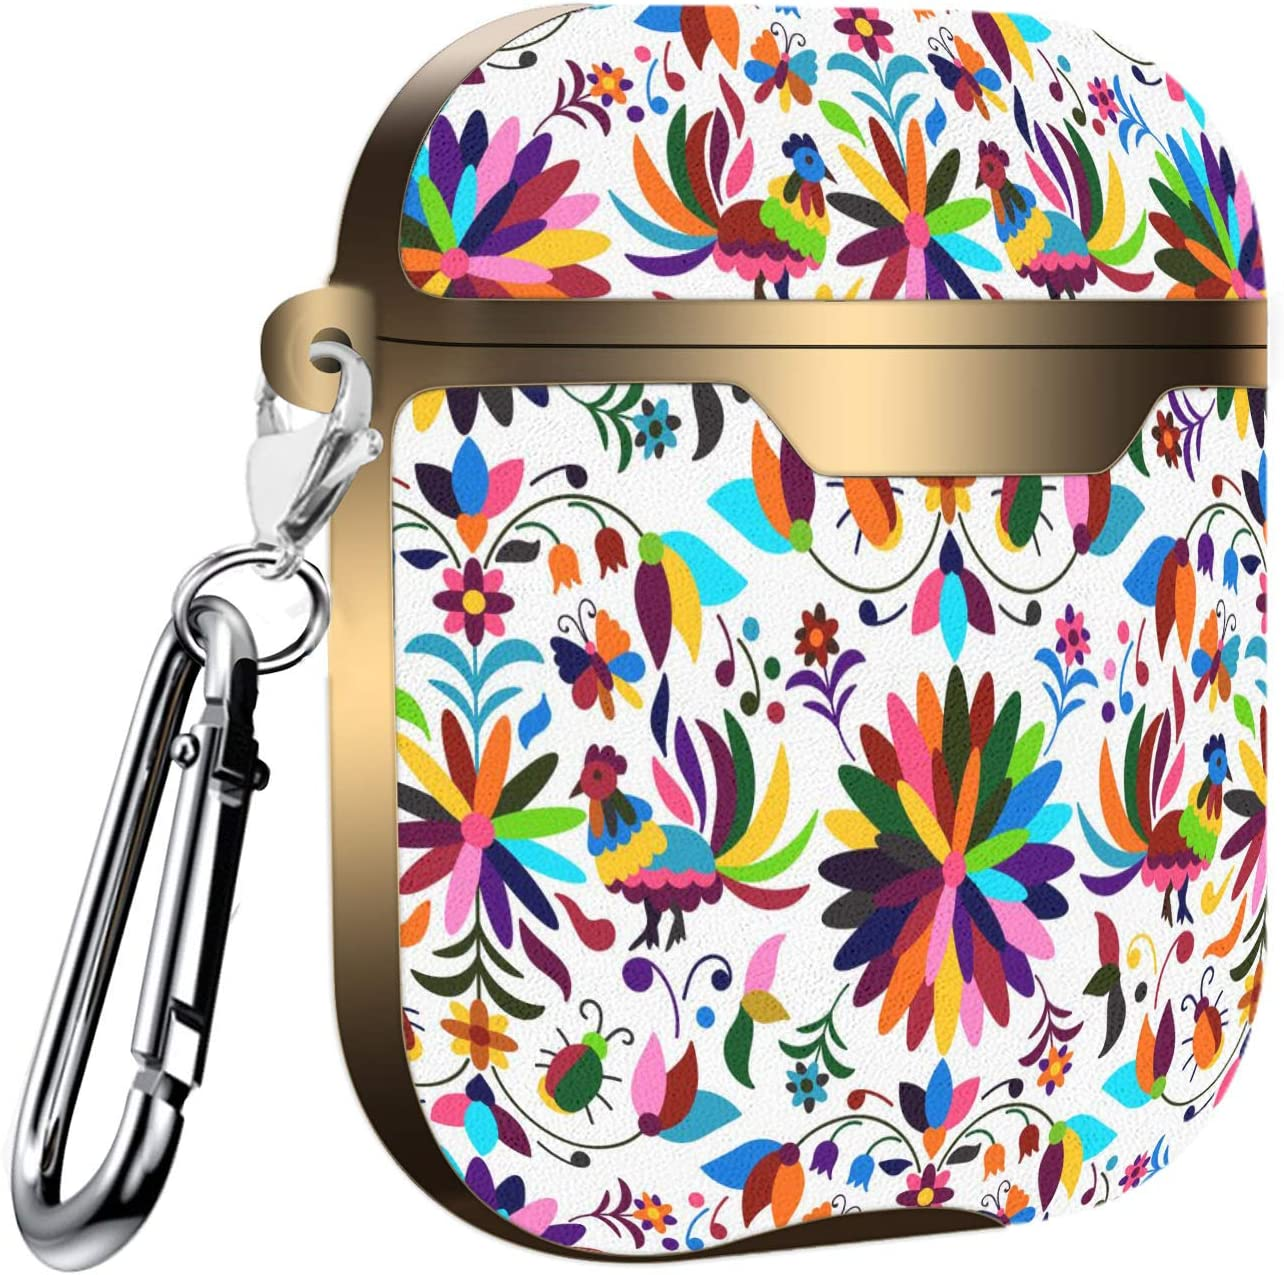 Slim Form Fitted Printing Pattern Cover Case with Carabiner Compatible with Airpods 1 and AirPods 2 Mexican Otomi Style Bright Pattern